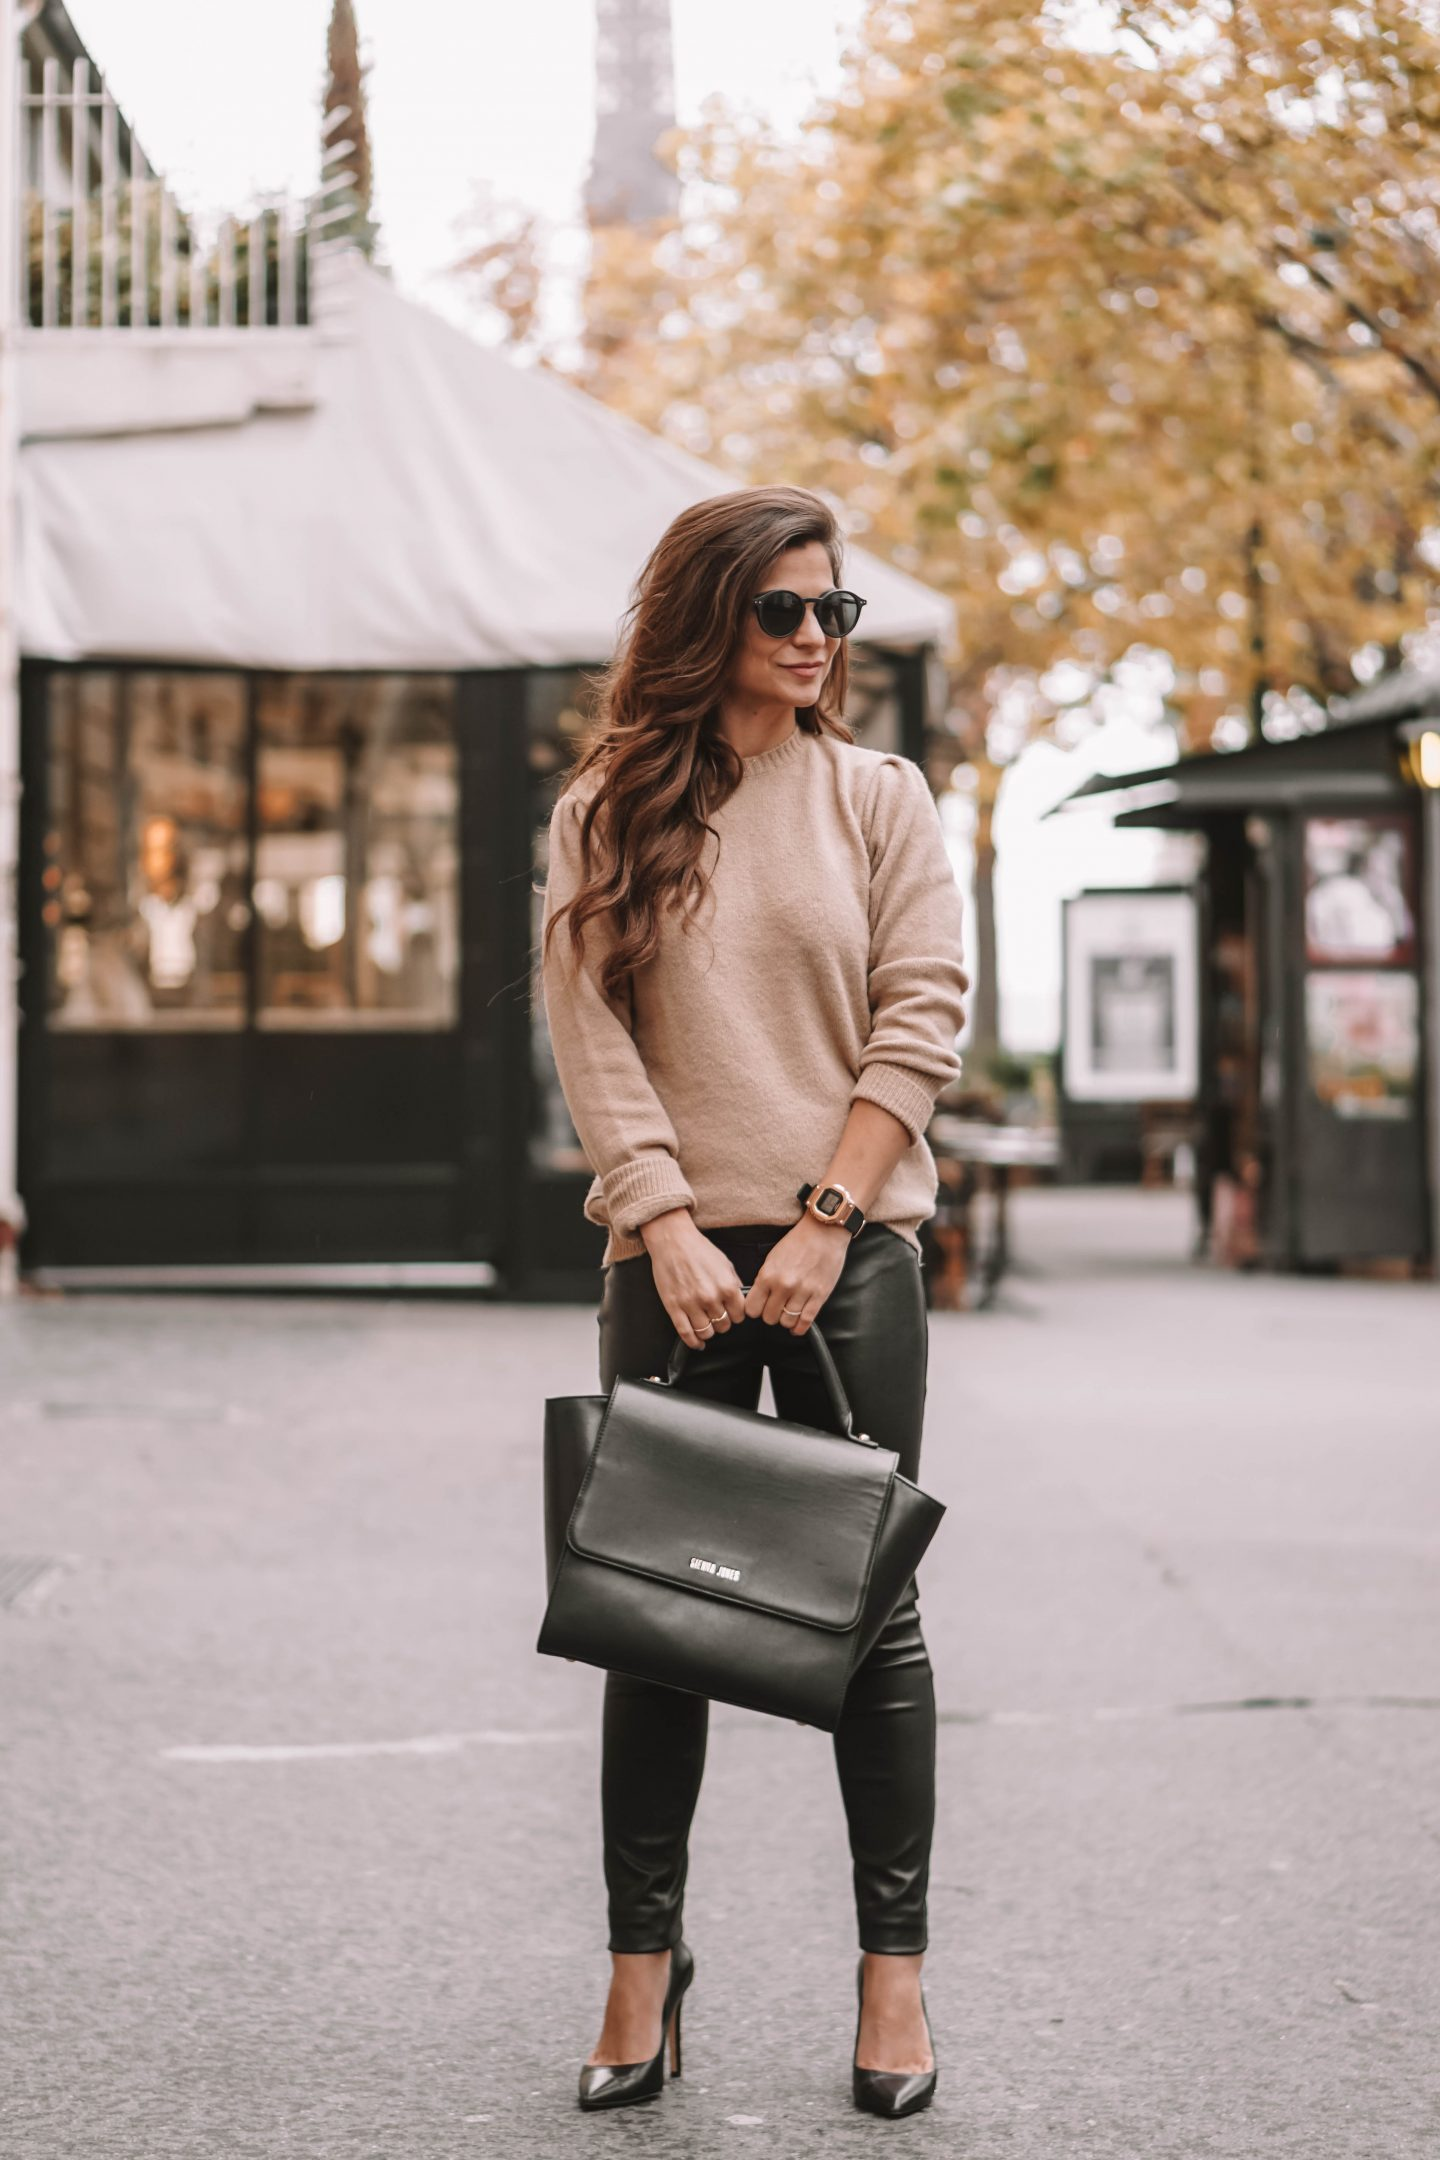 Fall fashion trends in Paris